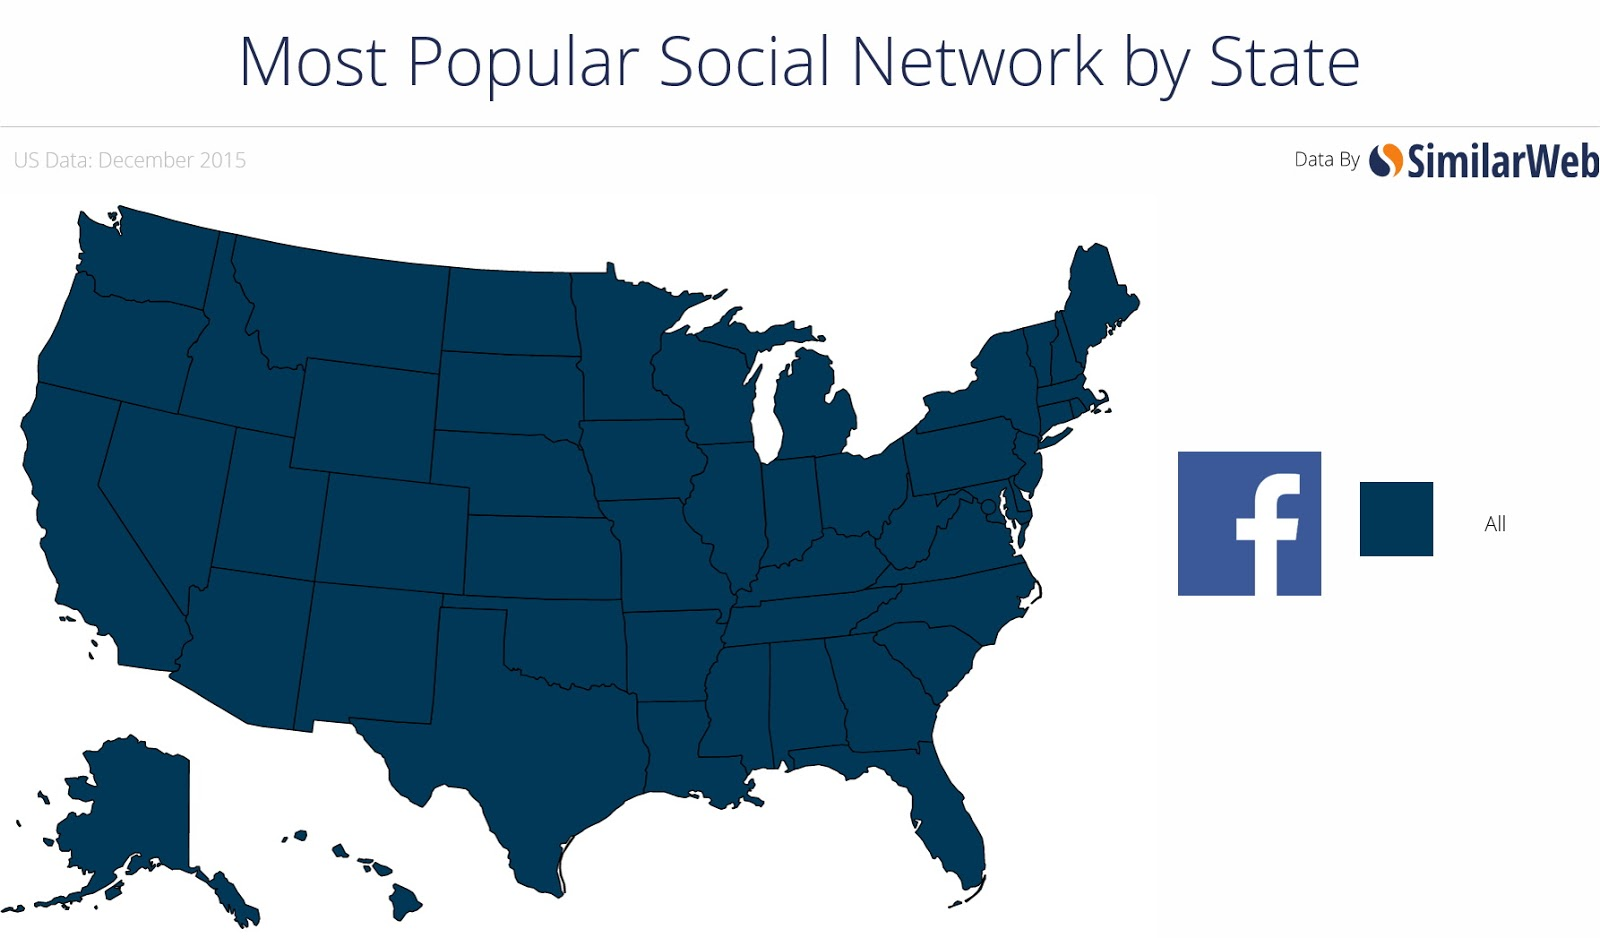 Most popular social network by State